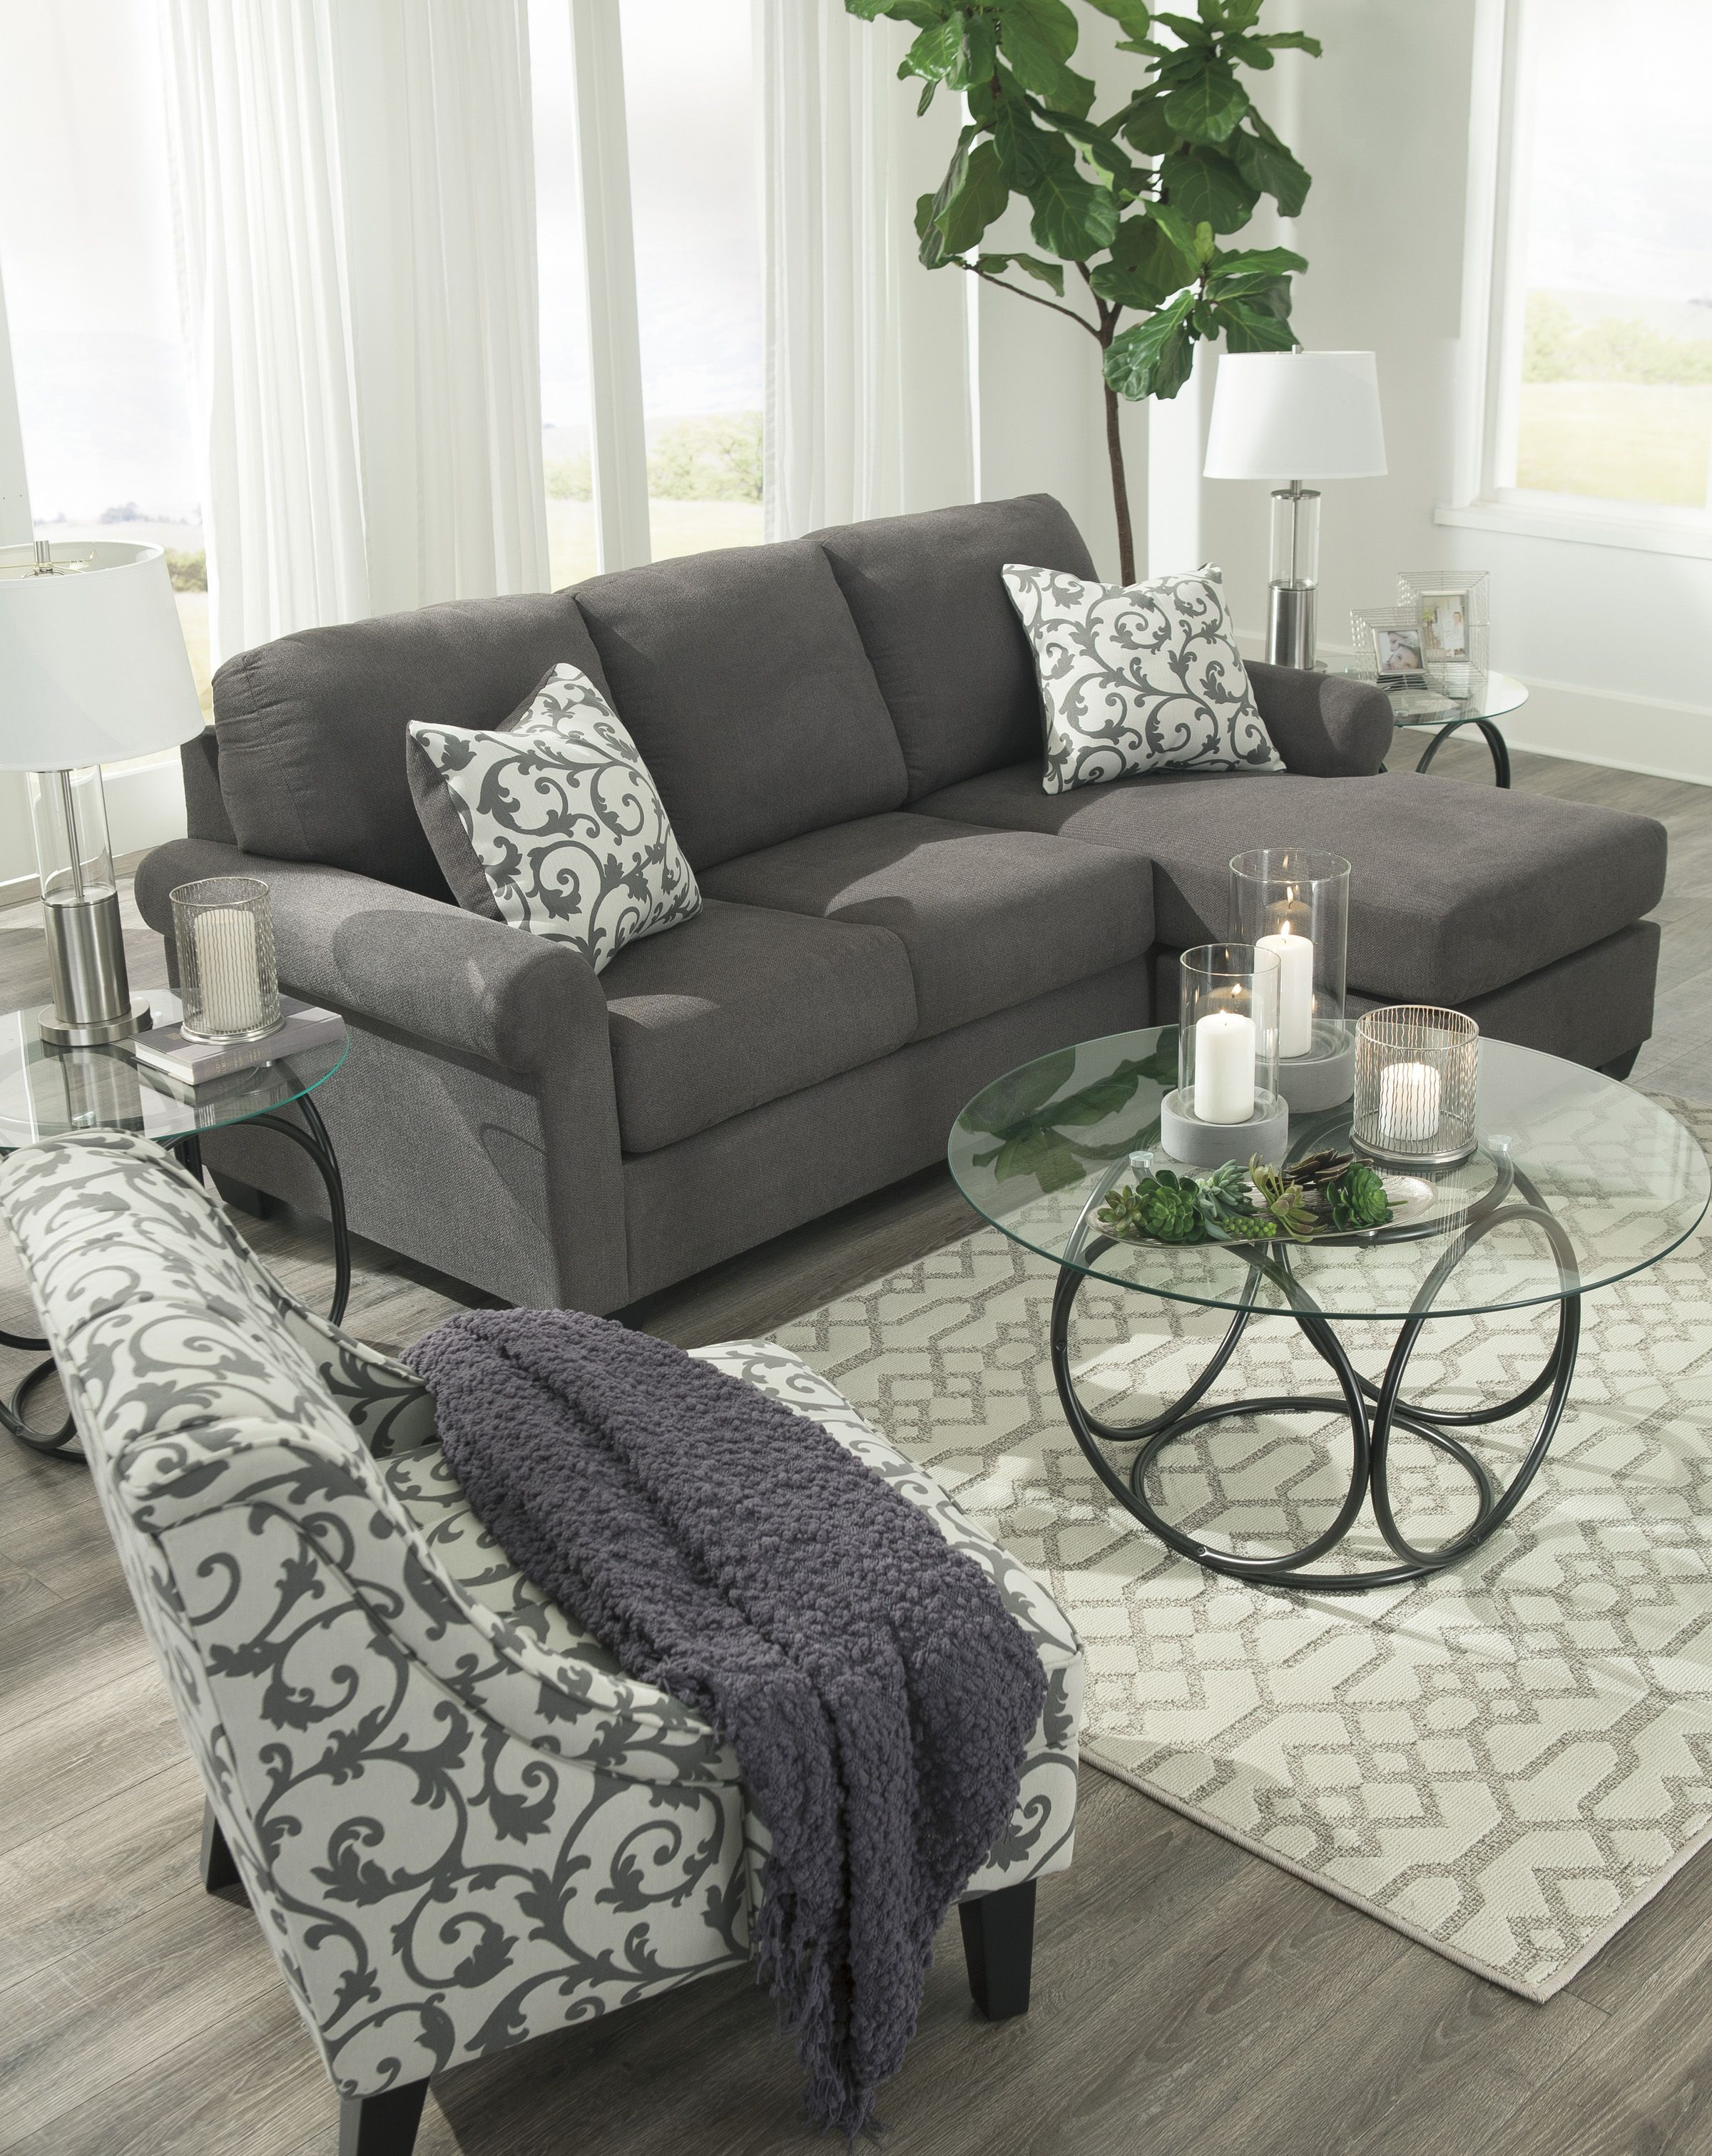 Sofa Chaise Kexlor In 2018 Small Tv Room Pinterest Chaise Sofa